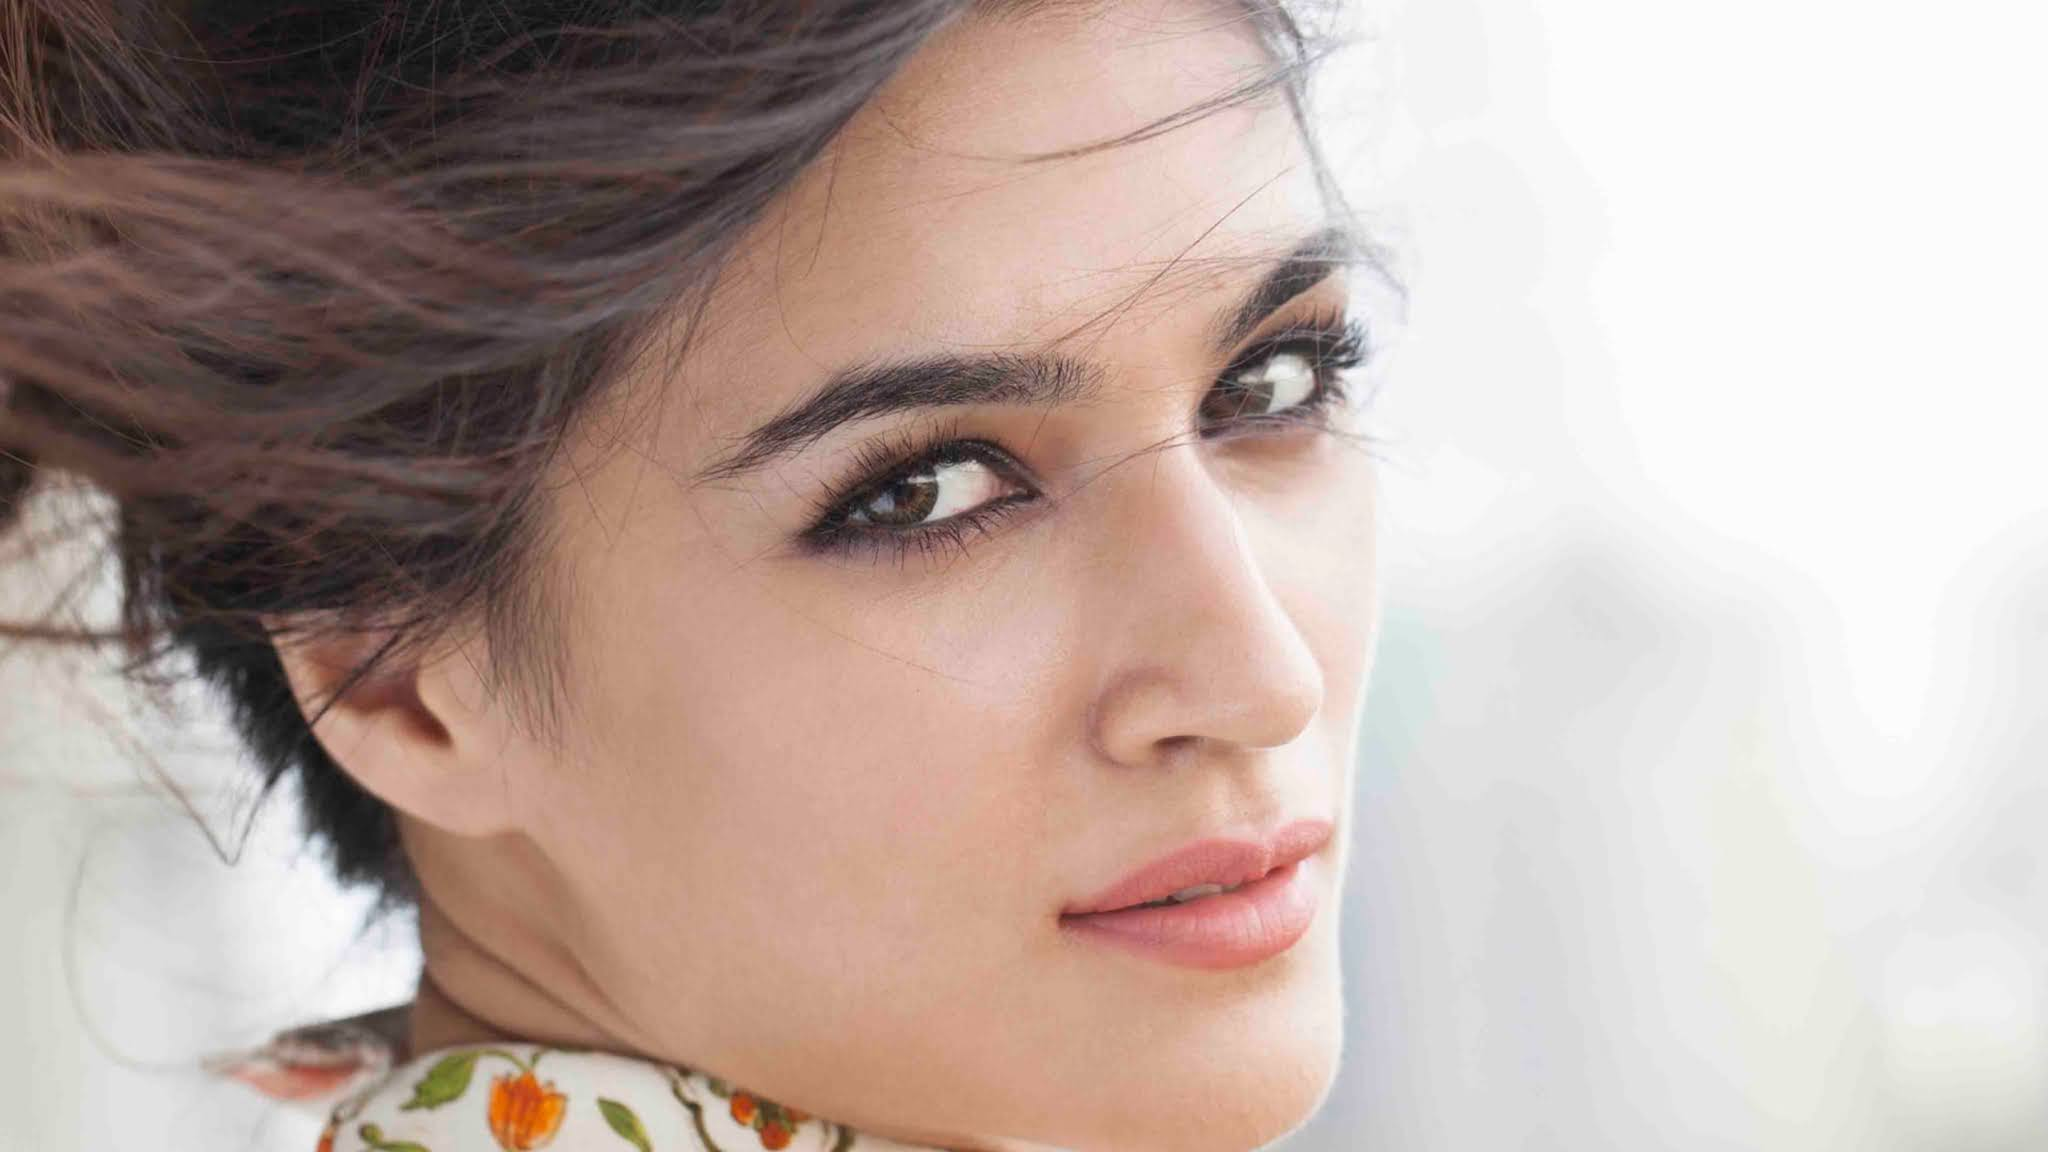 KRITI SANON - THE SECRETS OF HER BEAUTY ARE MORE OPEN THE DIET AND MAKEUP